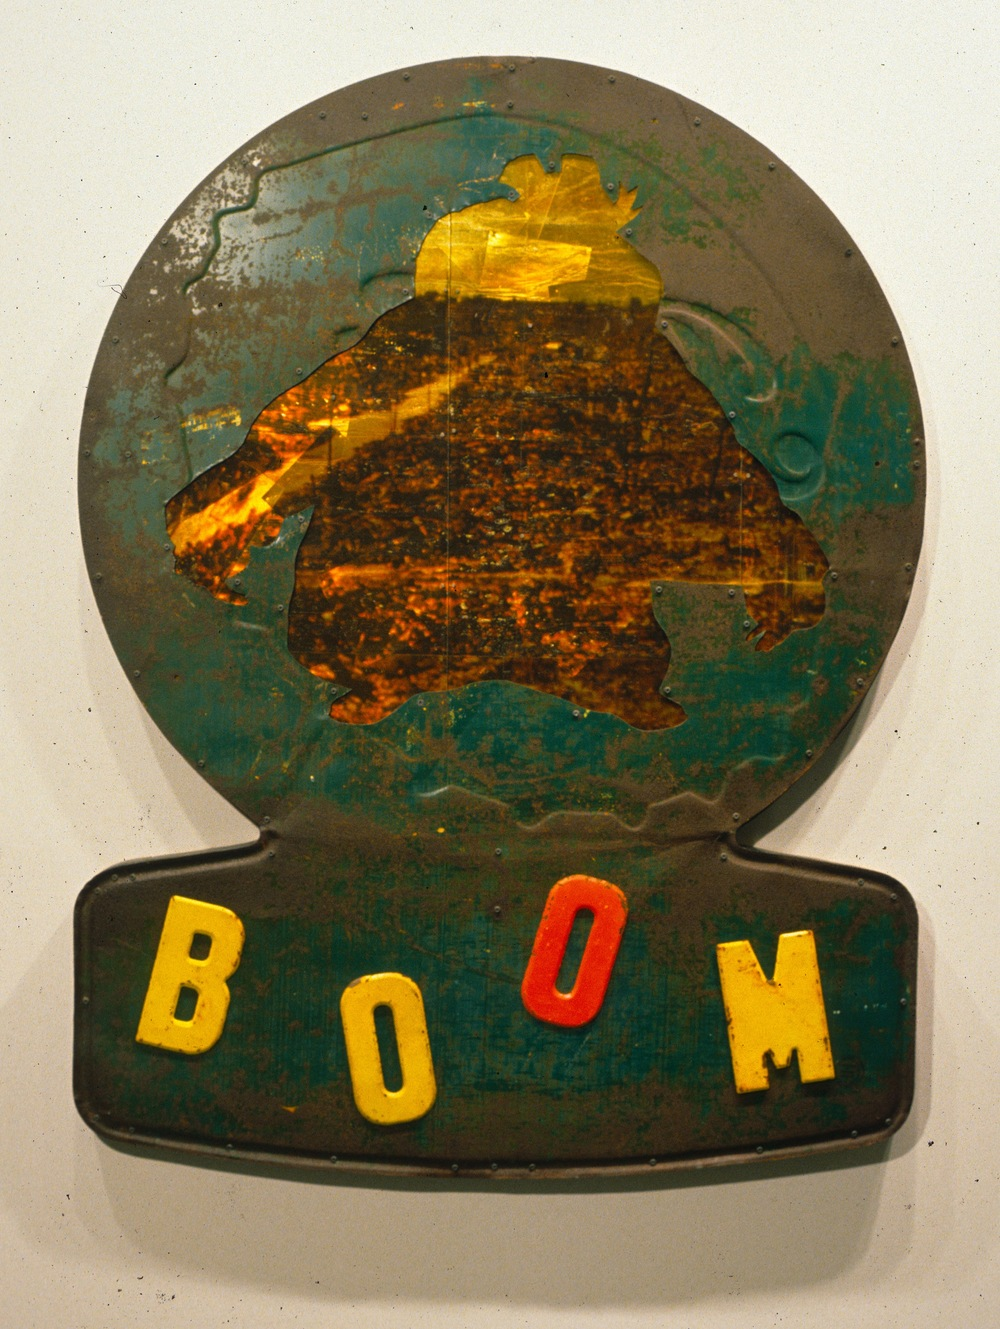 BOOM , 1998, Mixed media on panel, 61 x 40 x 2 1/2 inches.